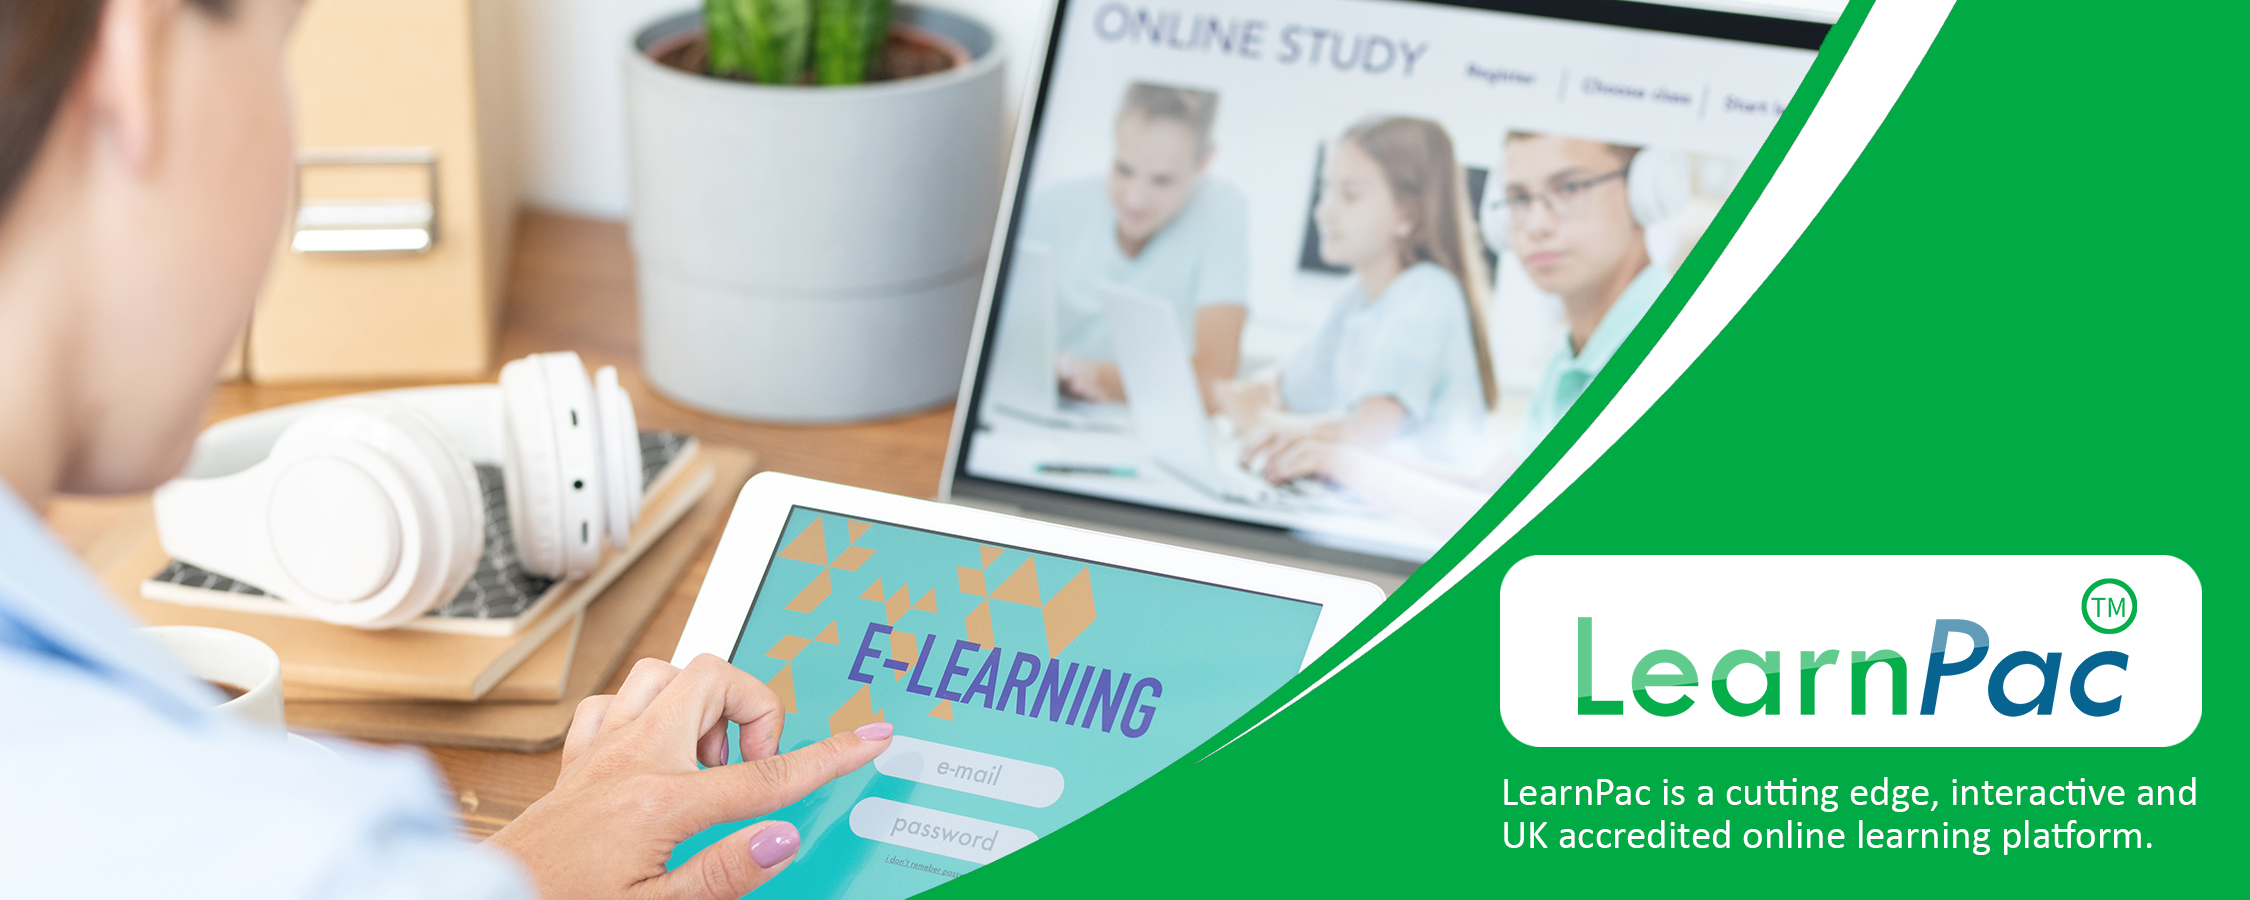 Care Certificate Standard 4 - E-Learning Courses - LearnPac Systems UK -